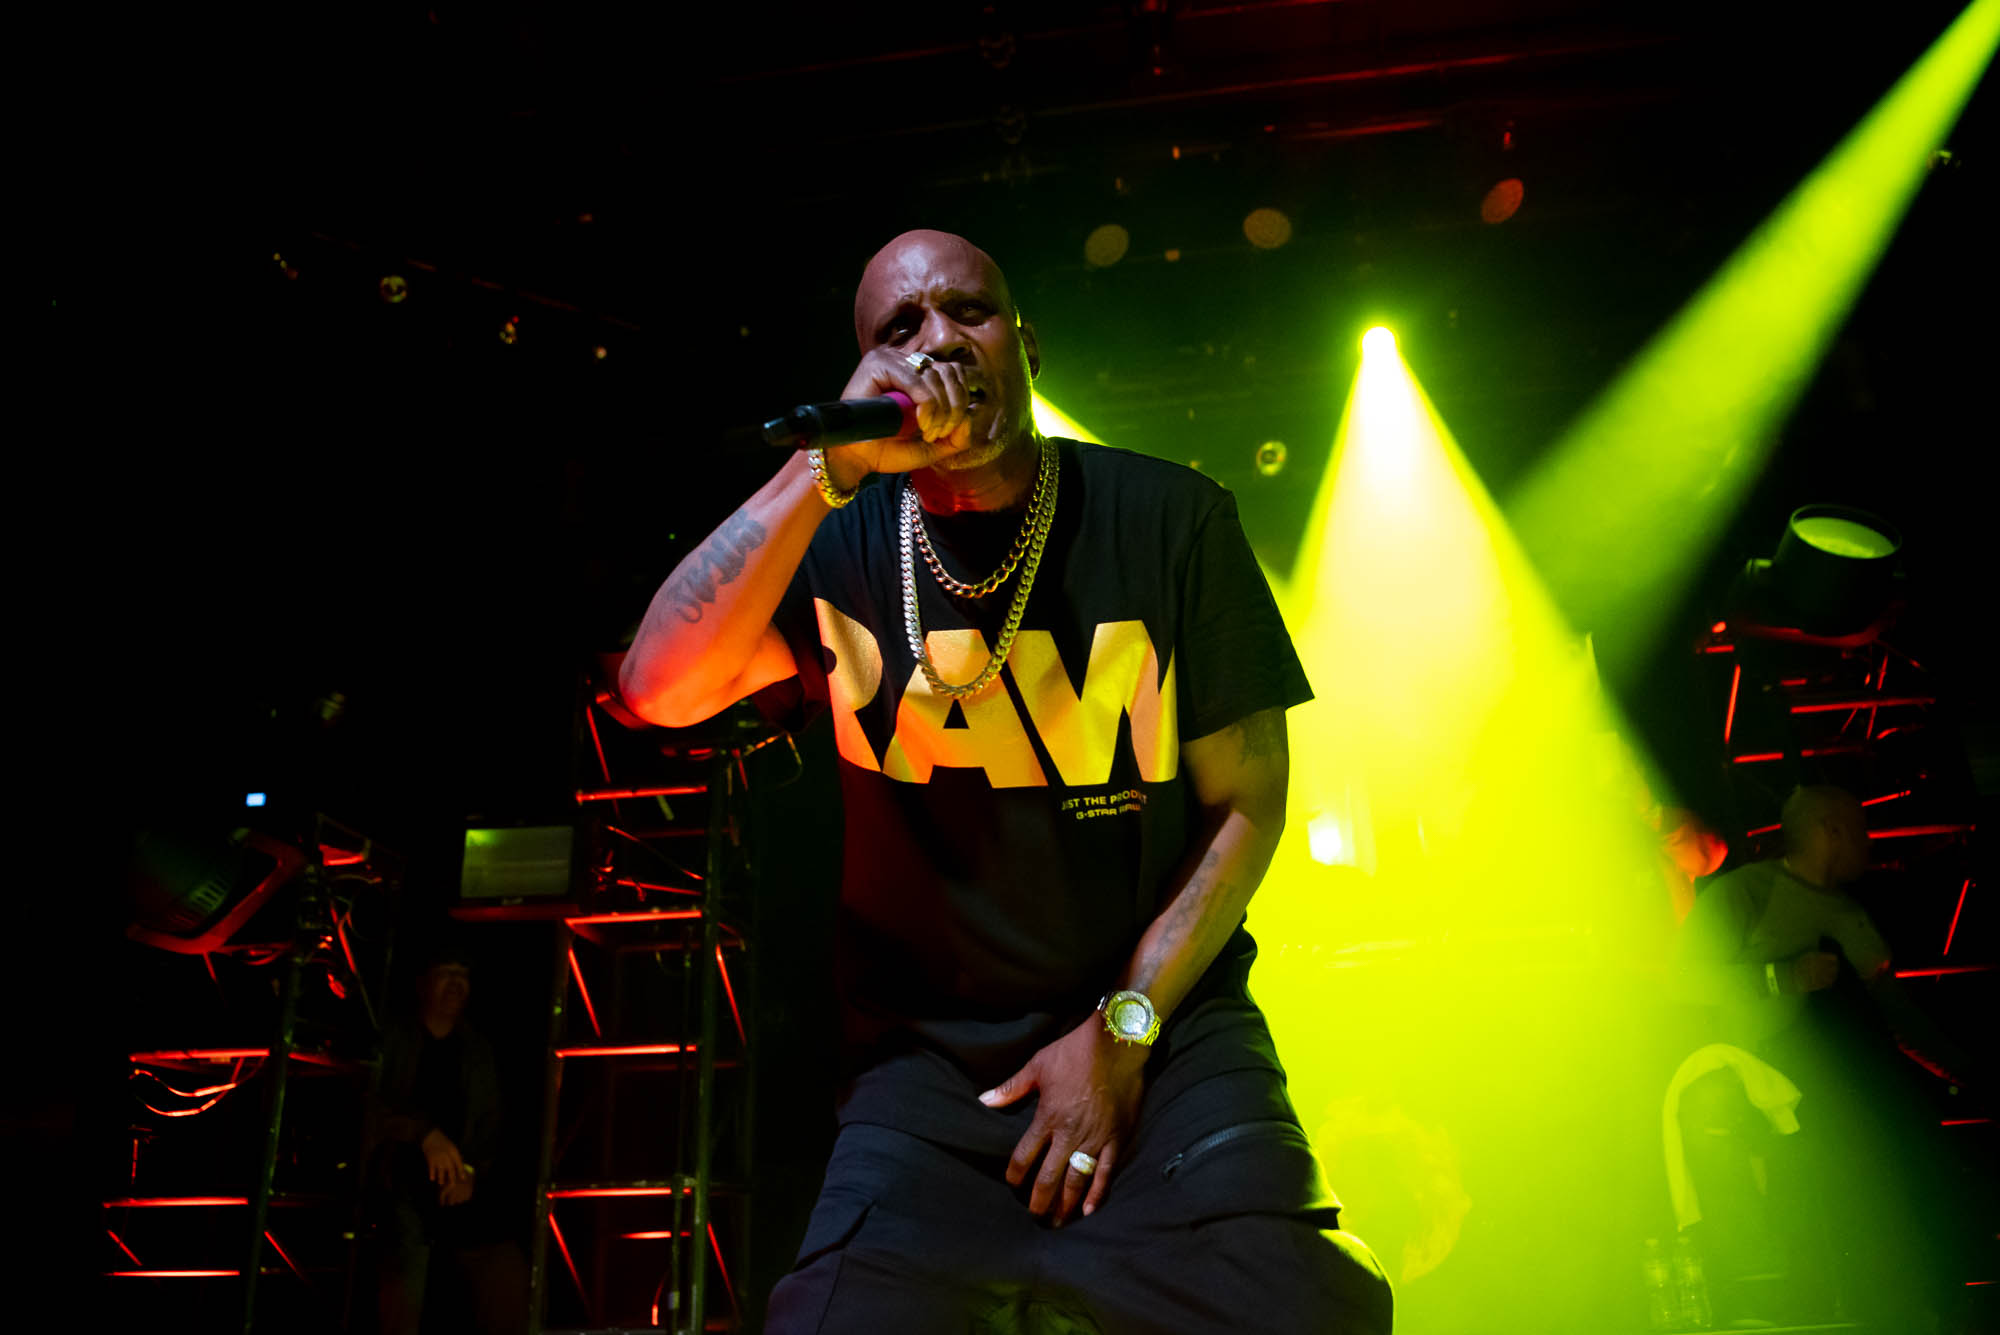 DMX performs at Irving Plaza on Monday, April 1, 2019.